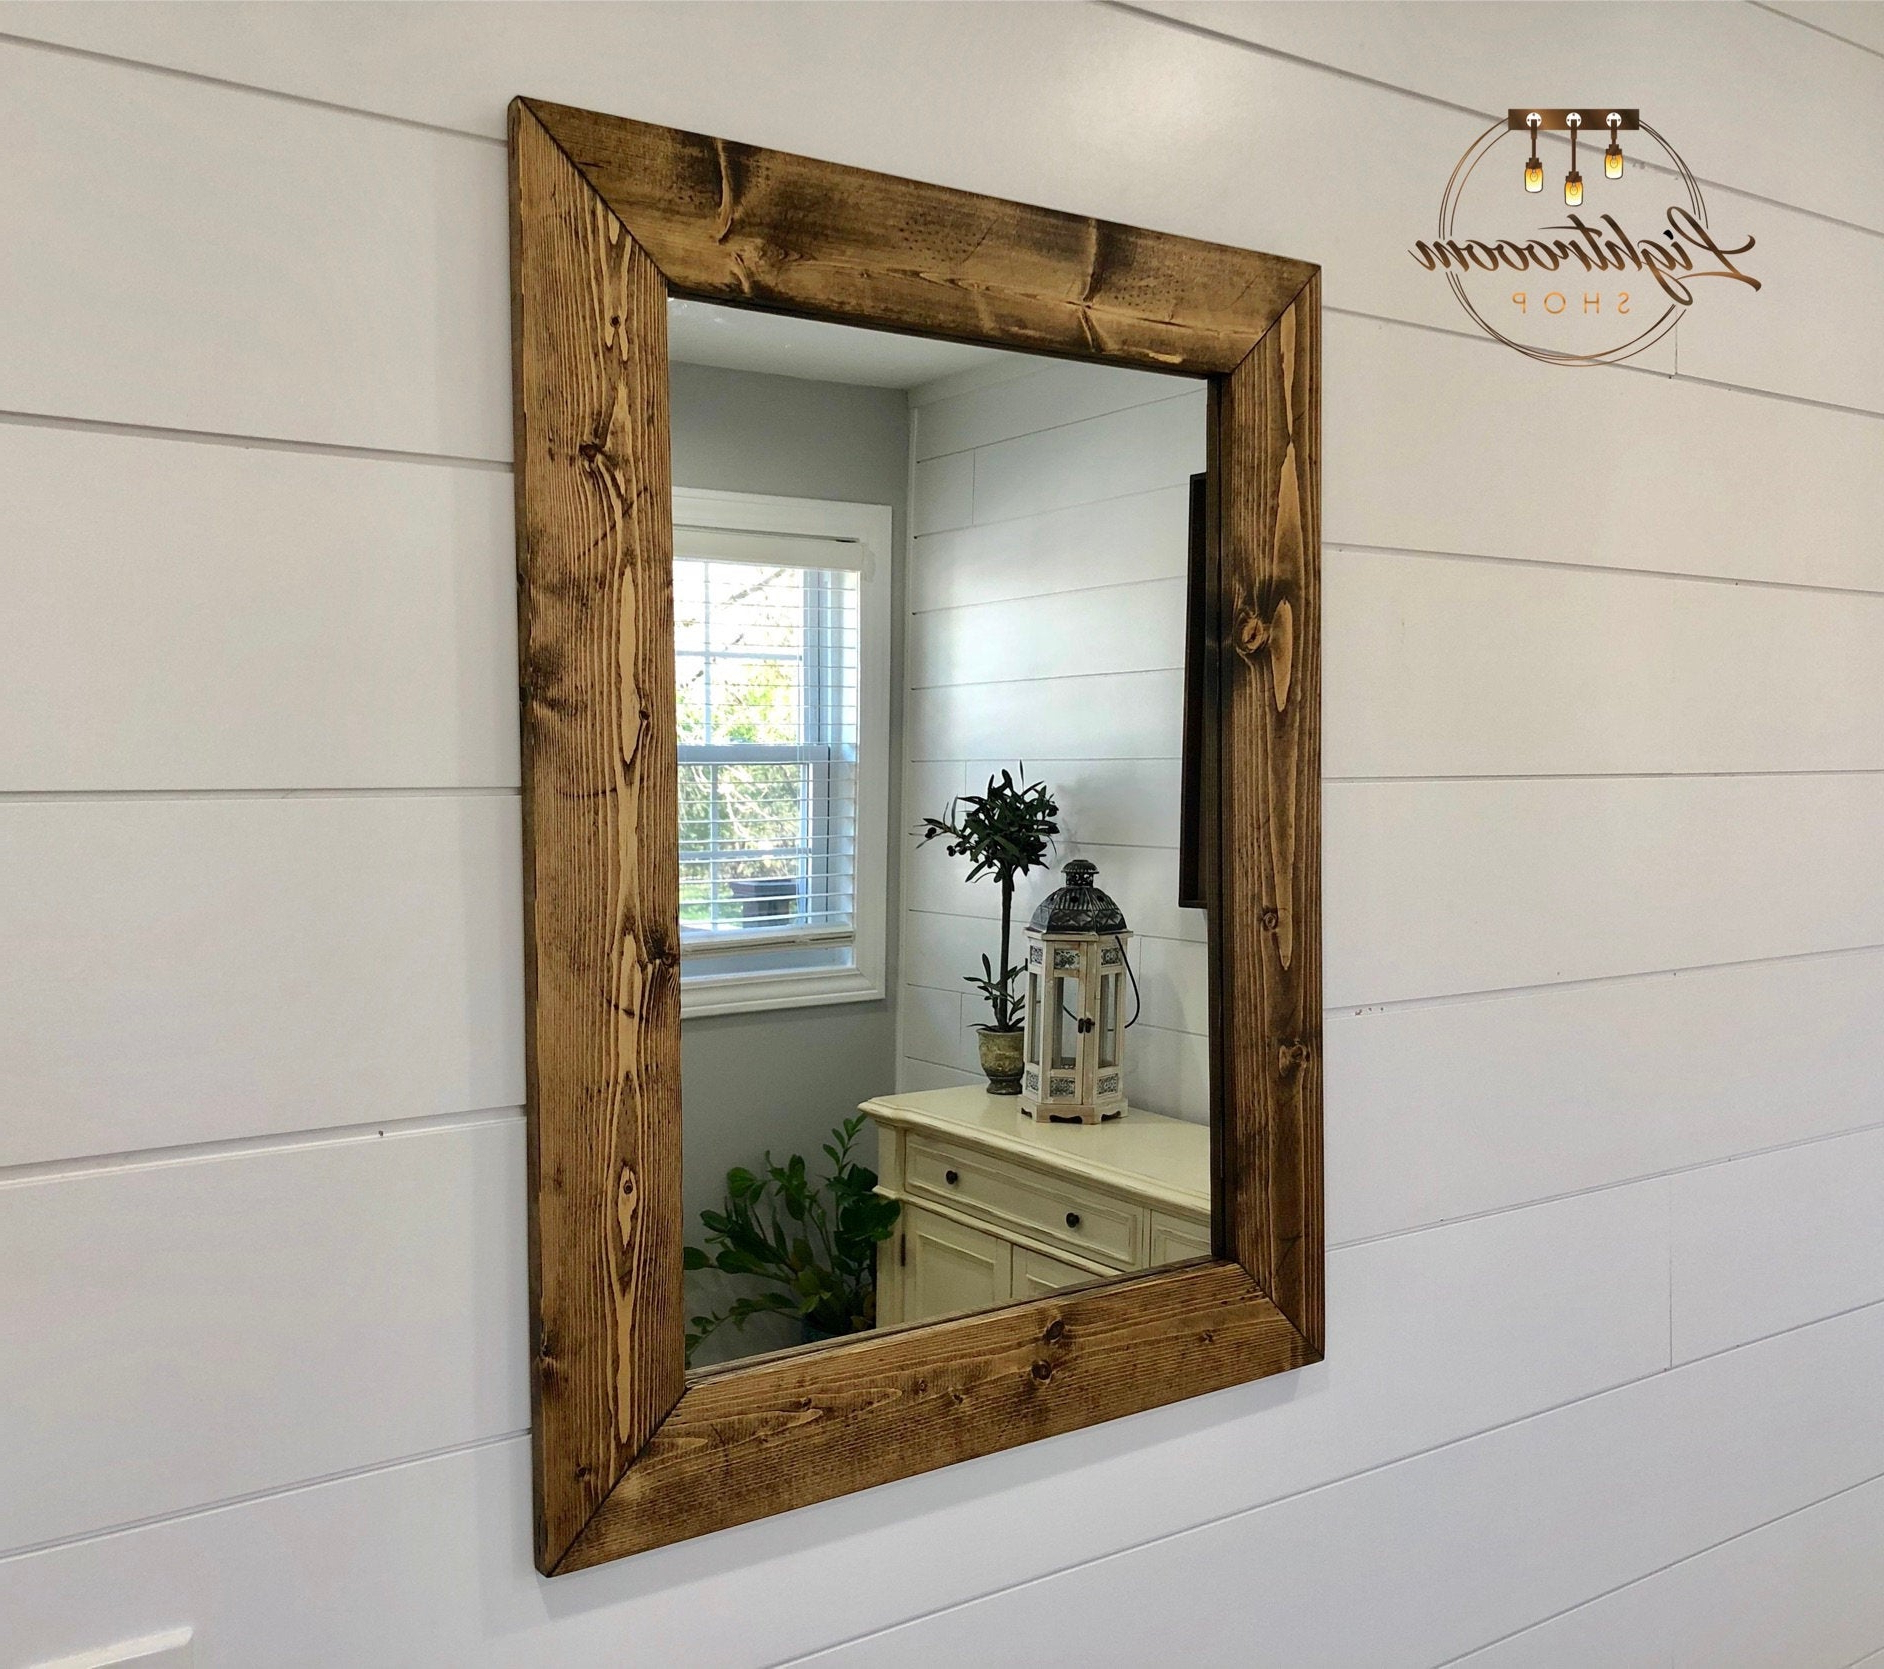 Wood Framed Wall Mirrors Throughout 2019 Dark Walnut Mirror, Wood Frame Mirror, Handmade Rustic Wood Mirror, Bathroom Mirror, Framed Wall Mirror, Vanity Mirror, Large Mirror, Modern (View 14 of 20)